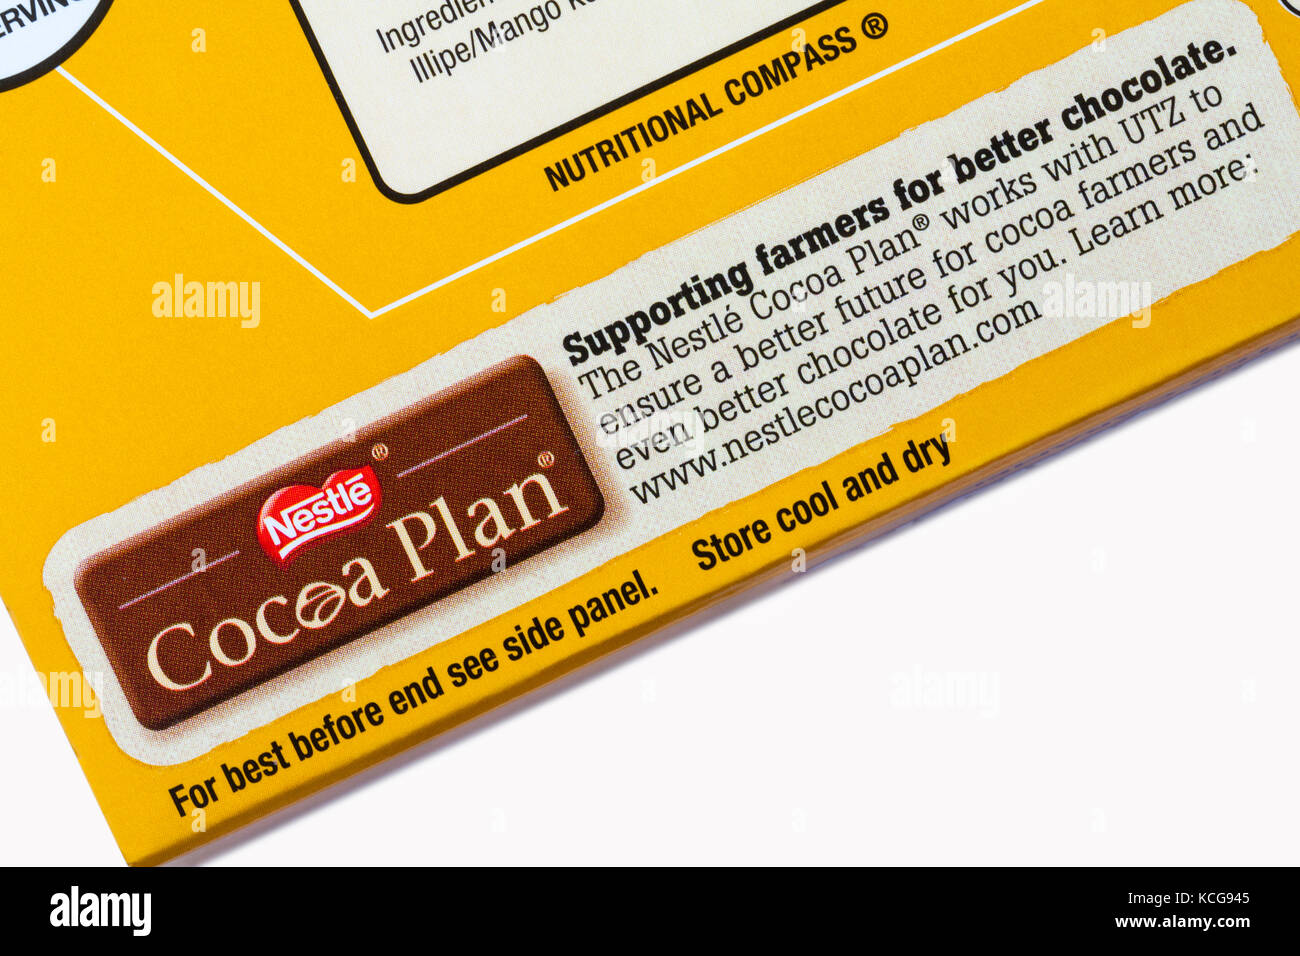 Nestle Cocoa Plan - information on box of Nestle Quality Street Matchmakers salted caramel - Stock Image